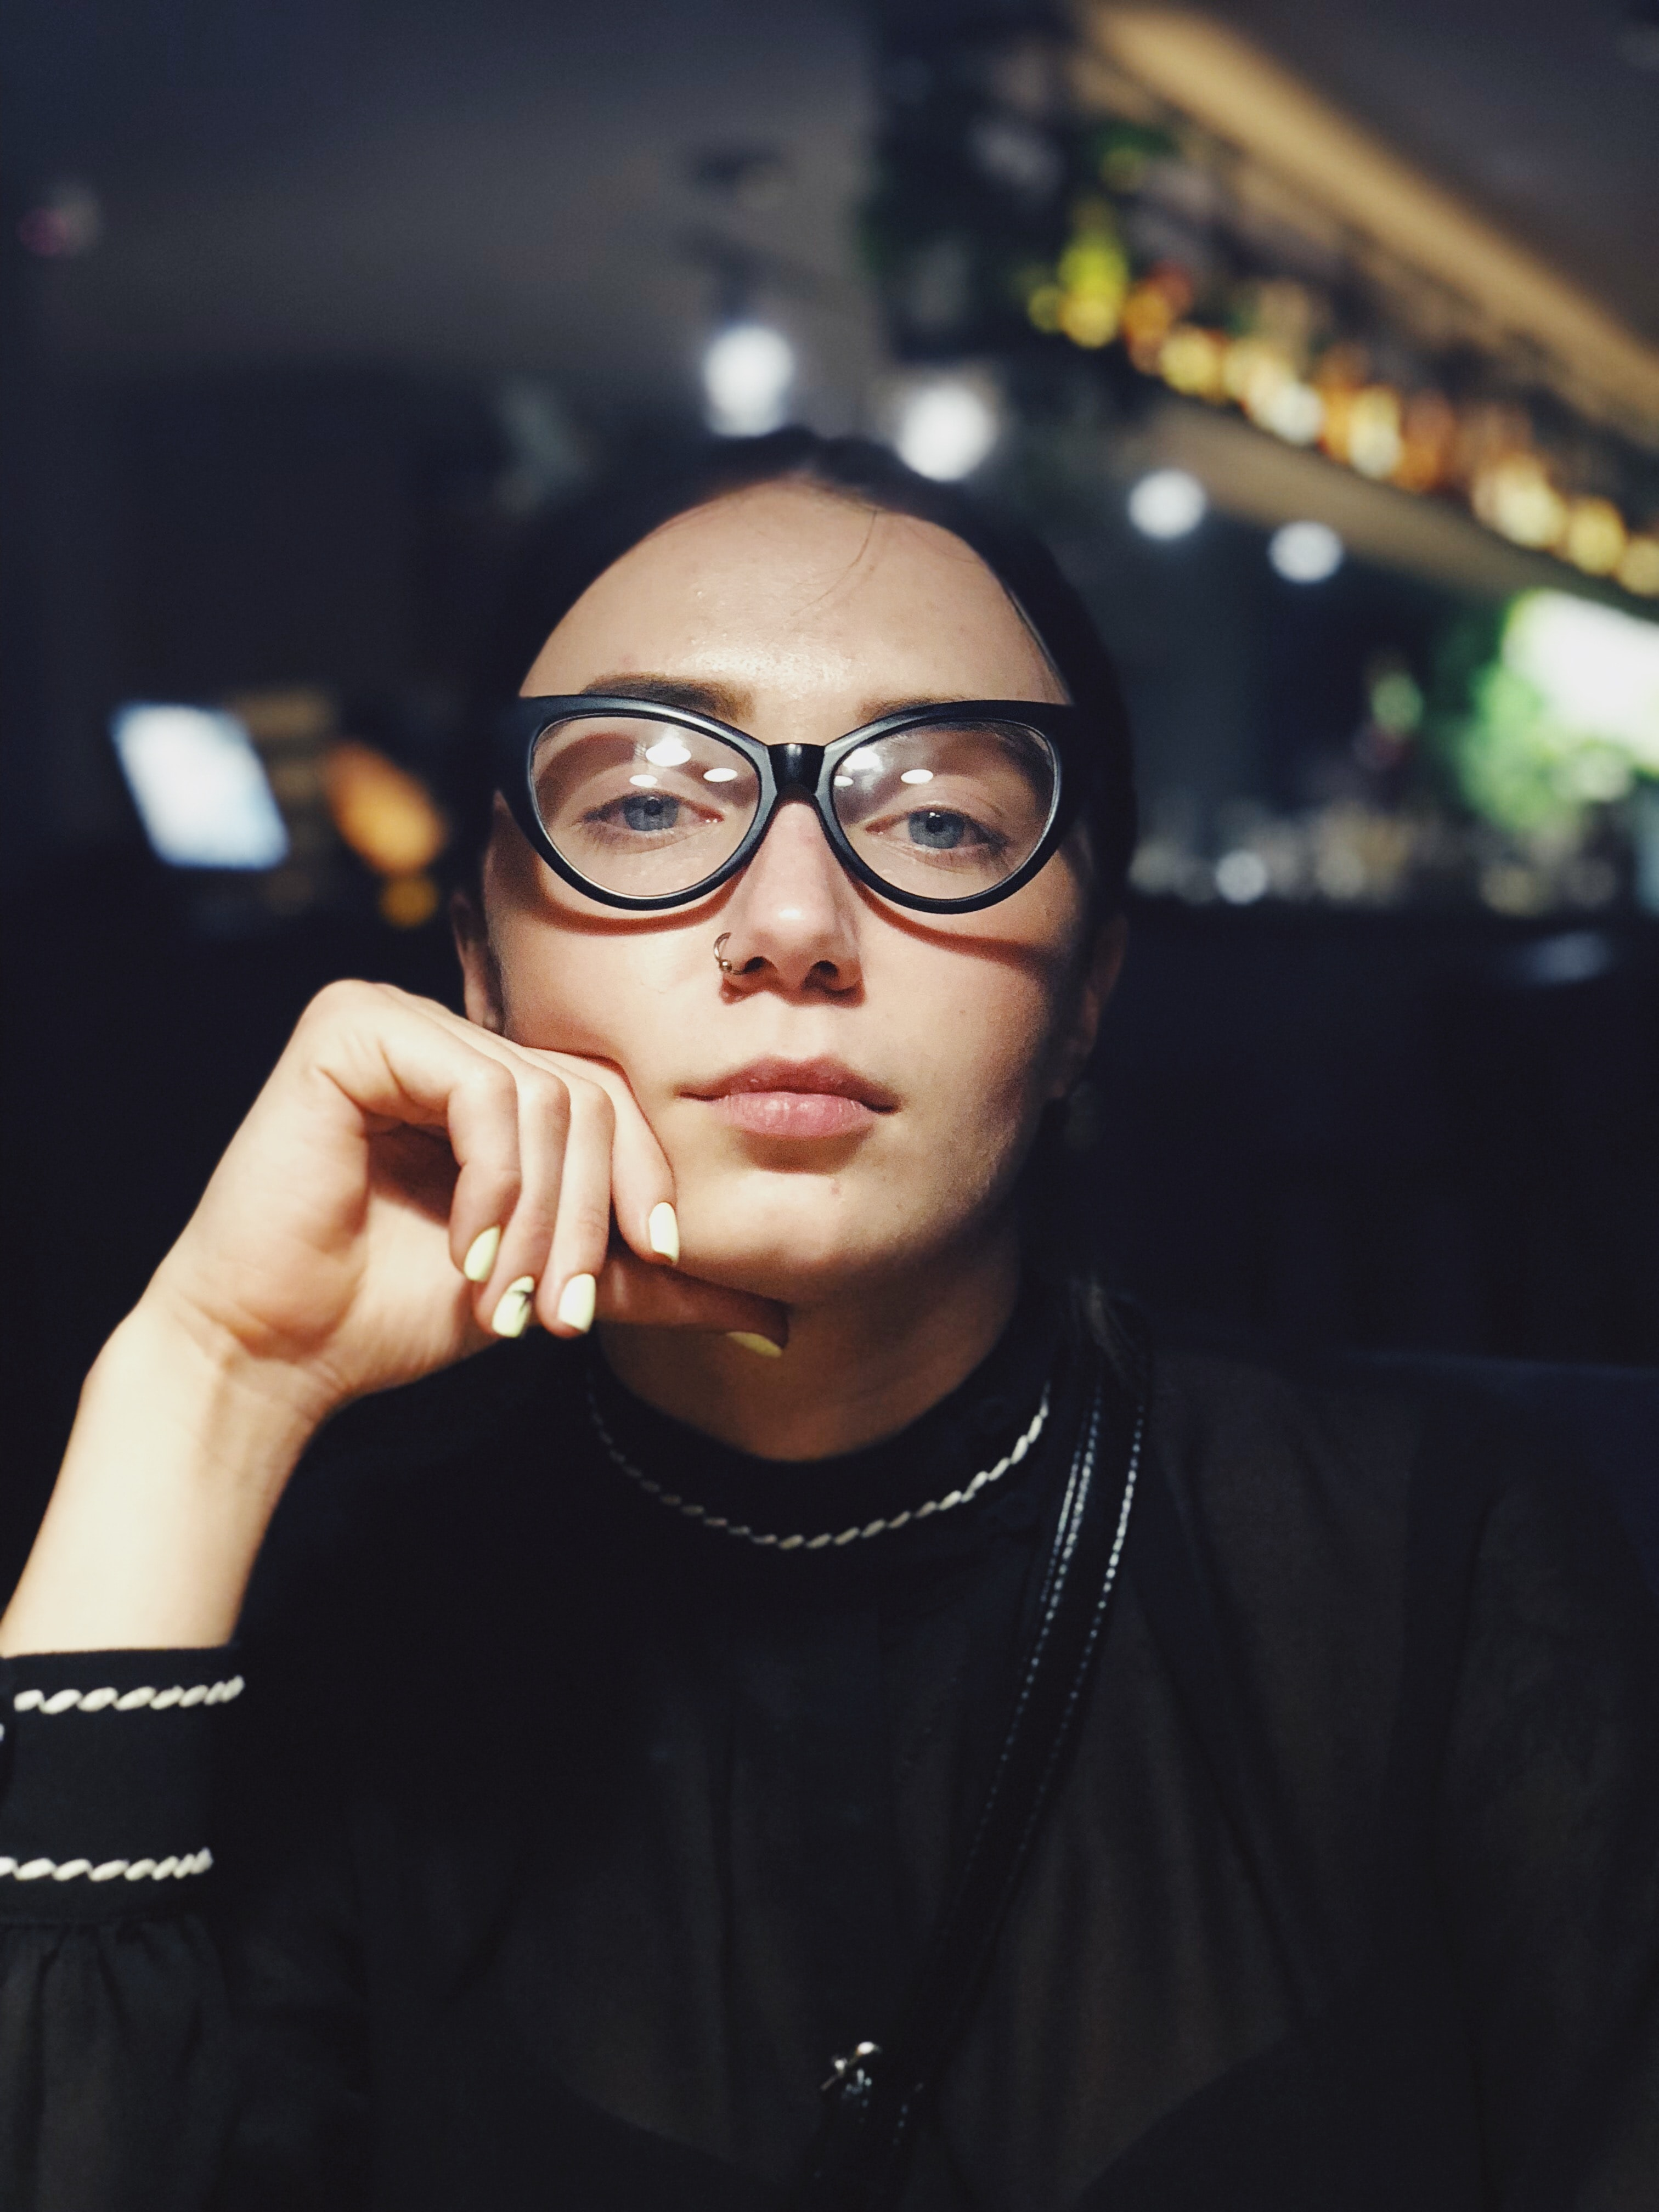 selective focus photography of woman wearing black eyeglasses